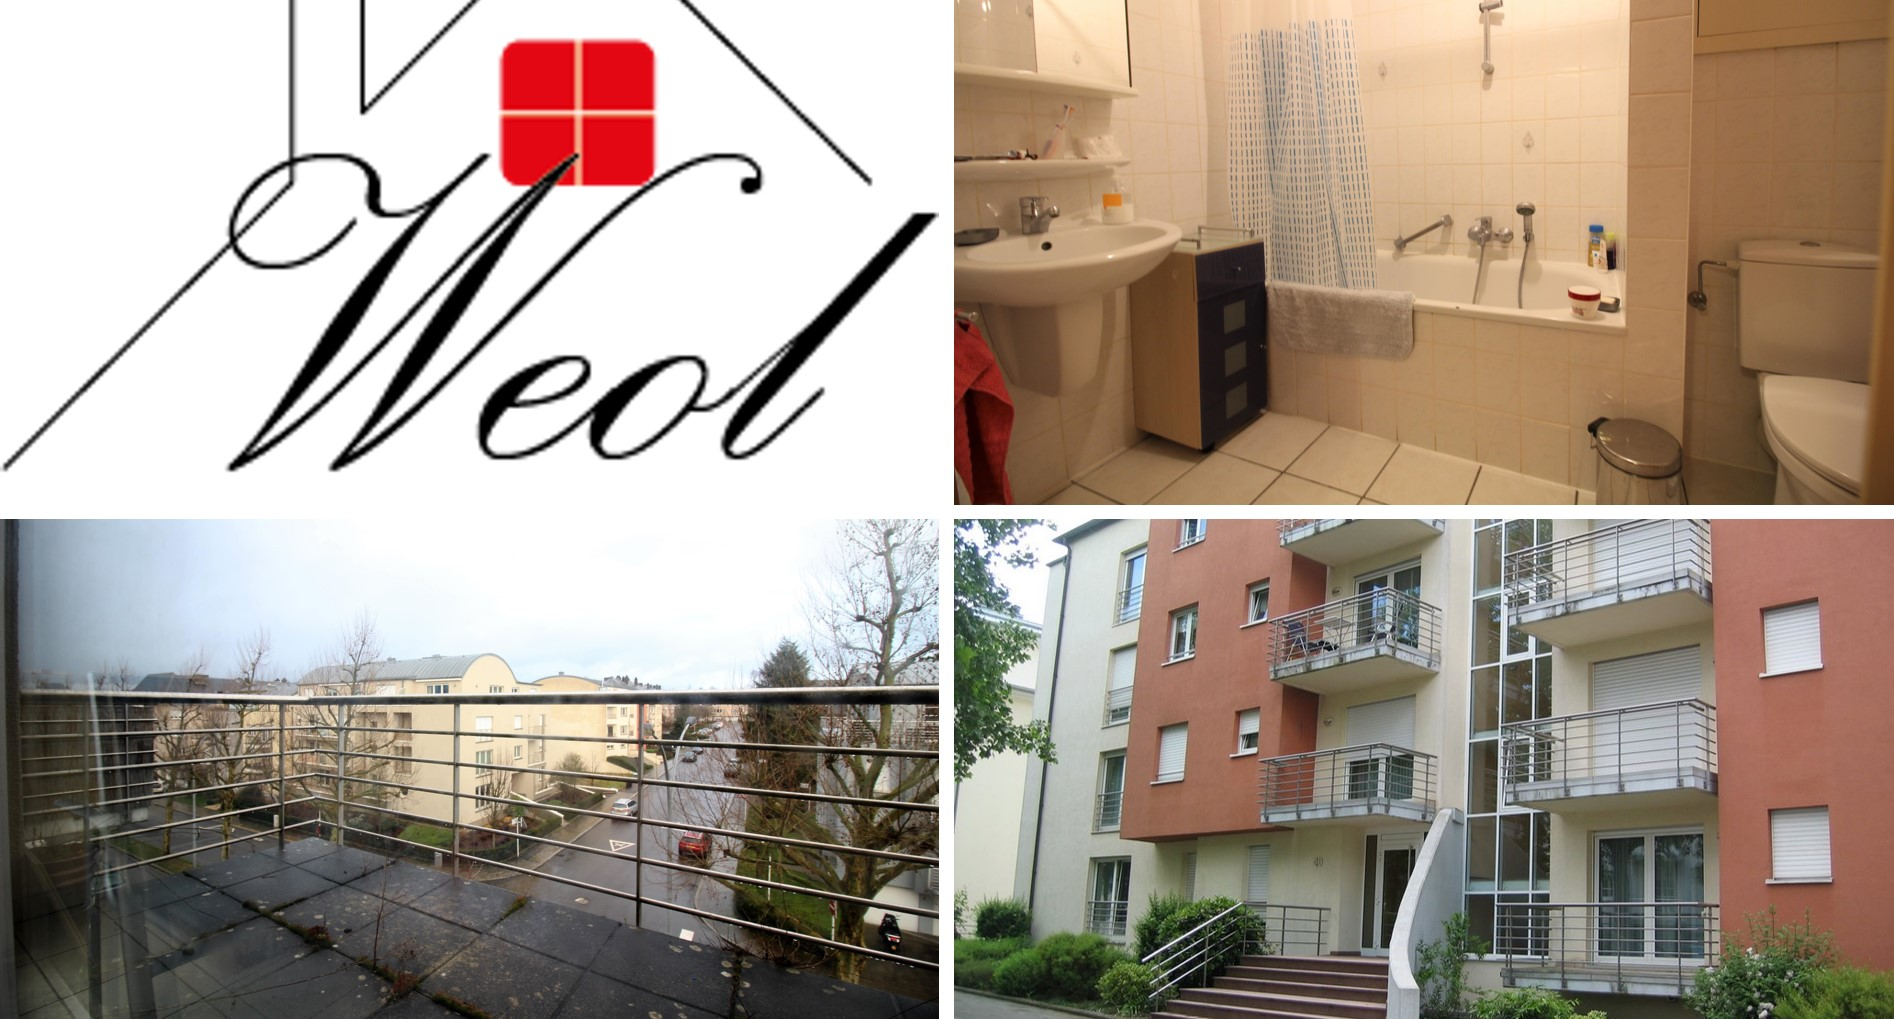 Chambre en location luxembourg bonnevoie weolweol for Chambre luxembourg